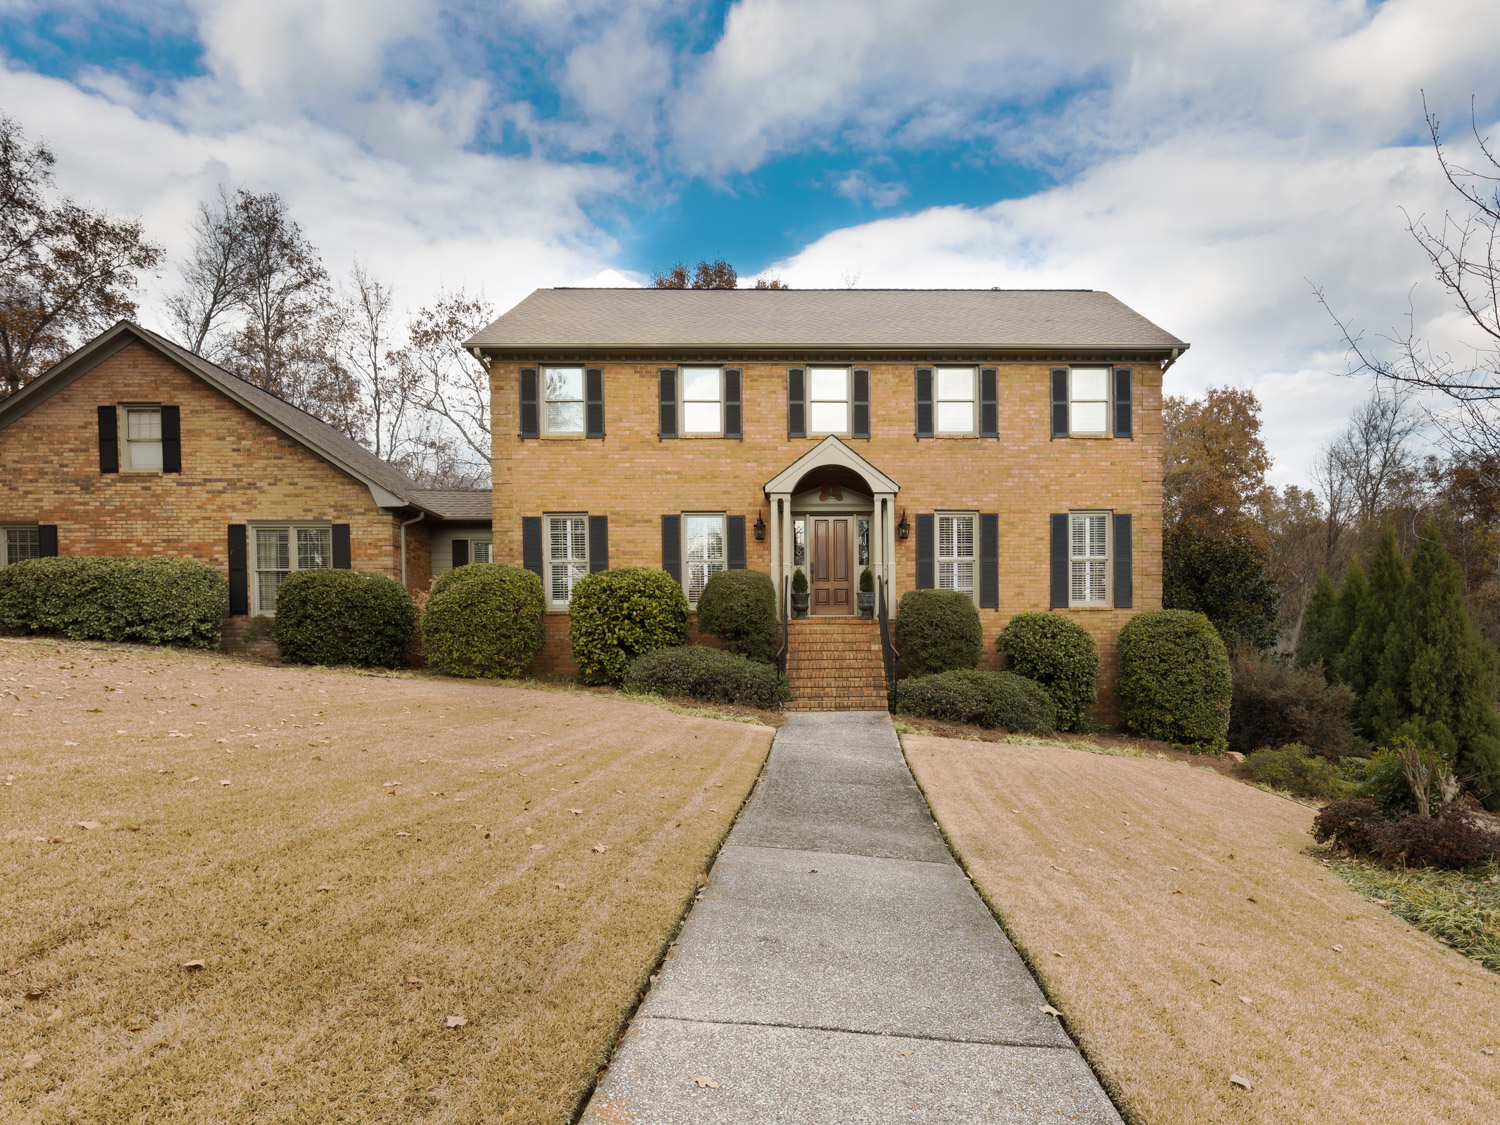 4912 Cold Harbor - Birmingham AL Real Estate Photography0037.jpg